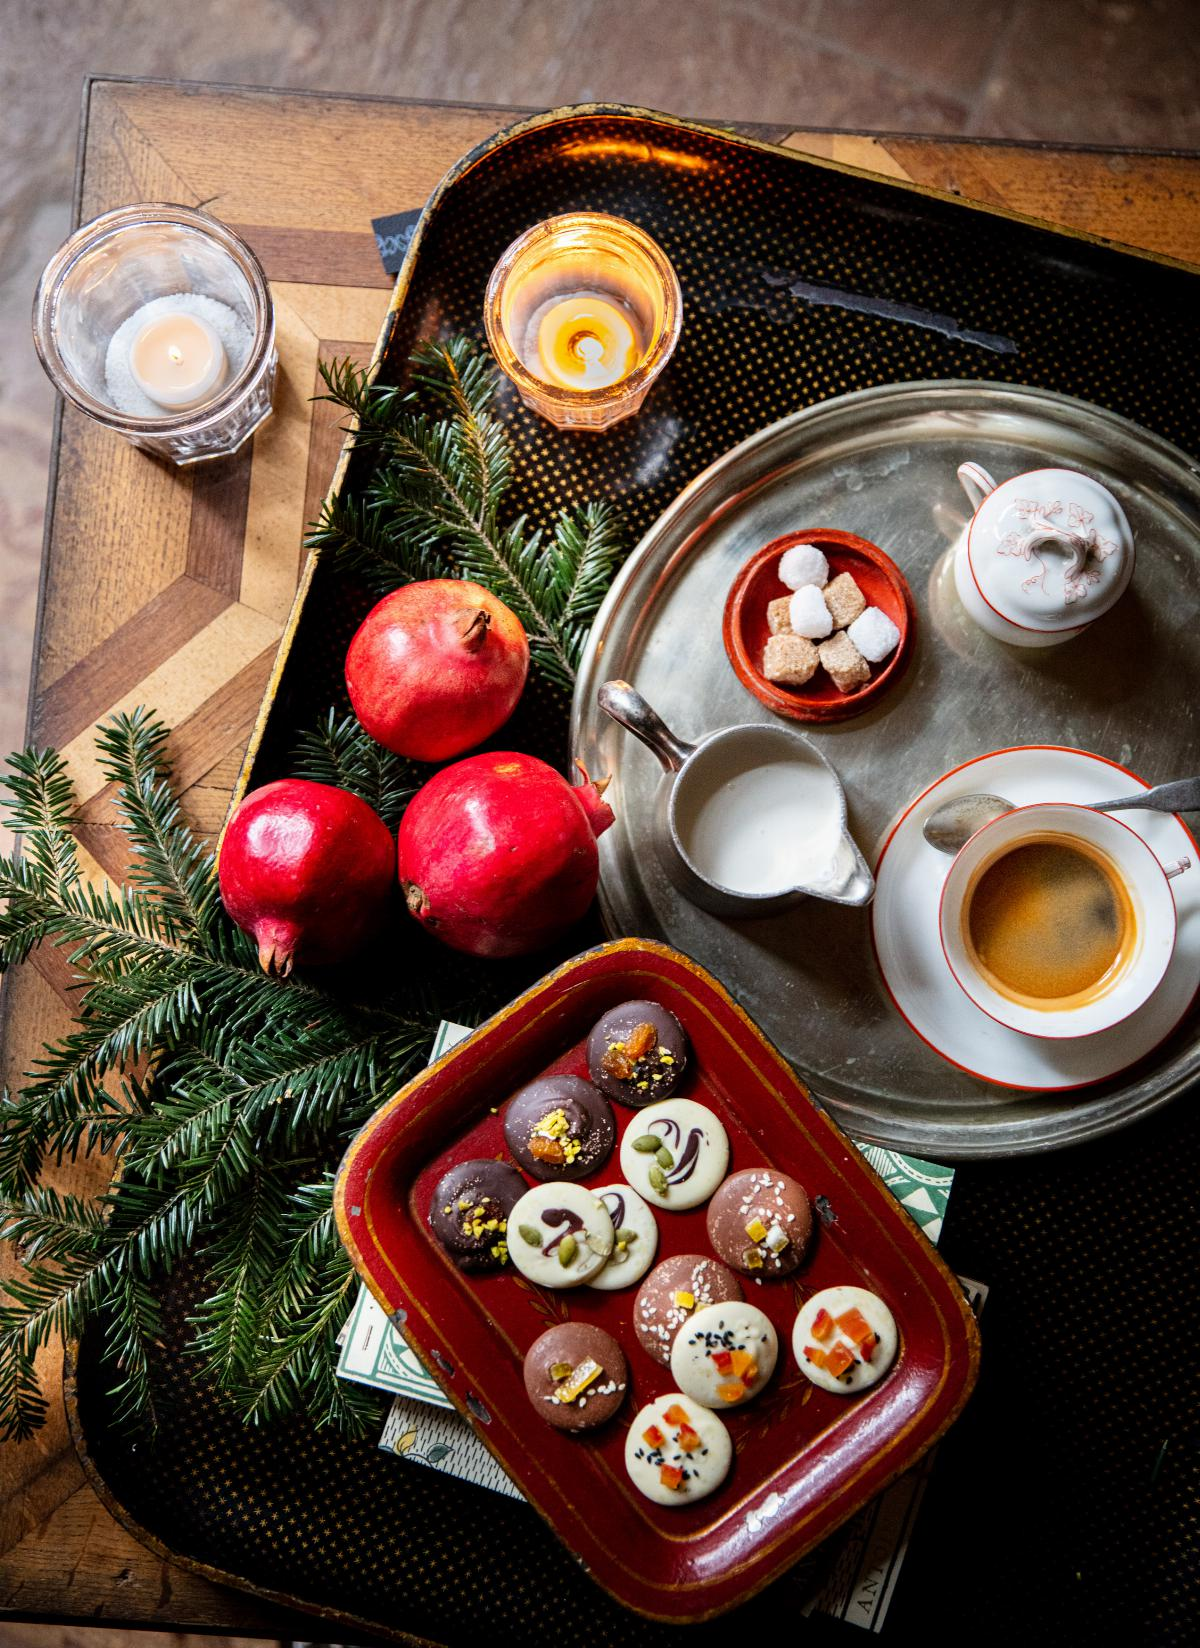 Beatrice Pilotto Food Lifestyle and Interiors photographer - CHRISTMAS AT RAW - SALE&PEPE